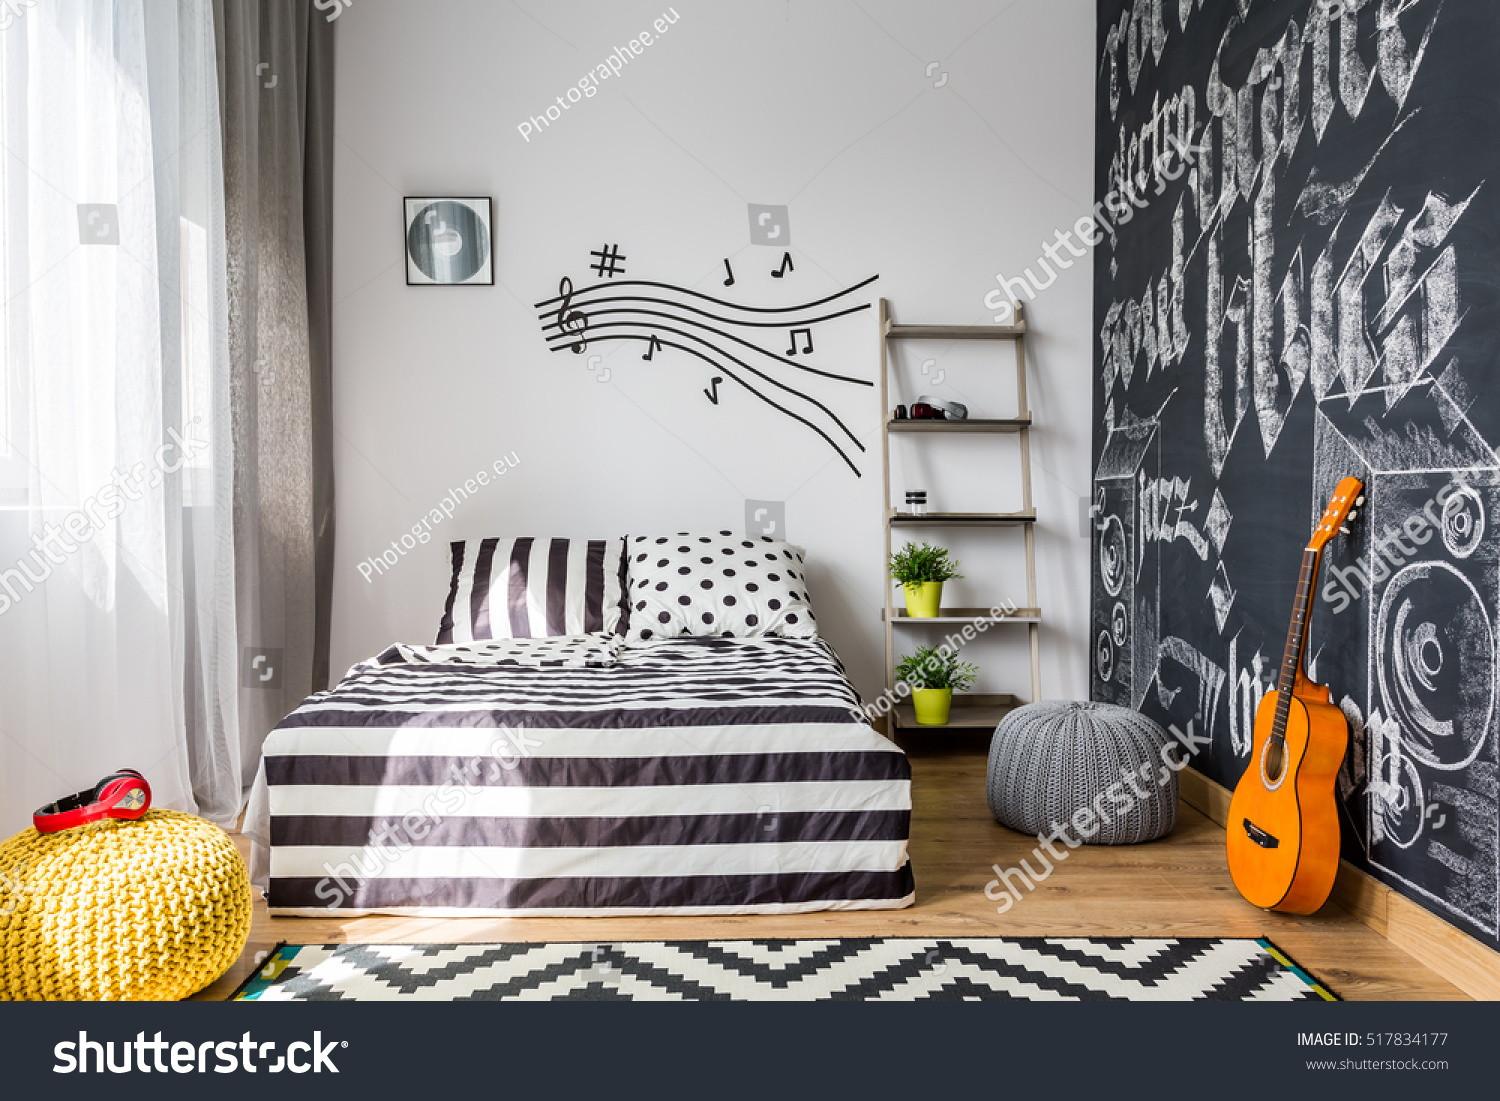 Shot of a cozy music inspired bedroom #517834177